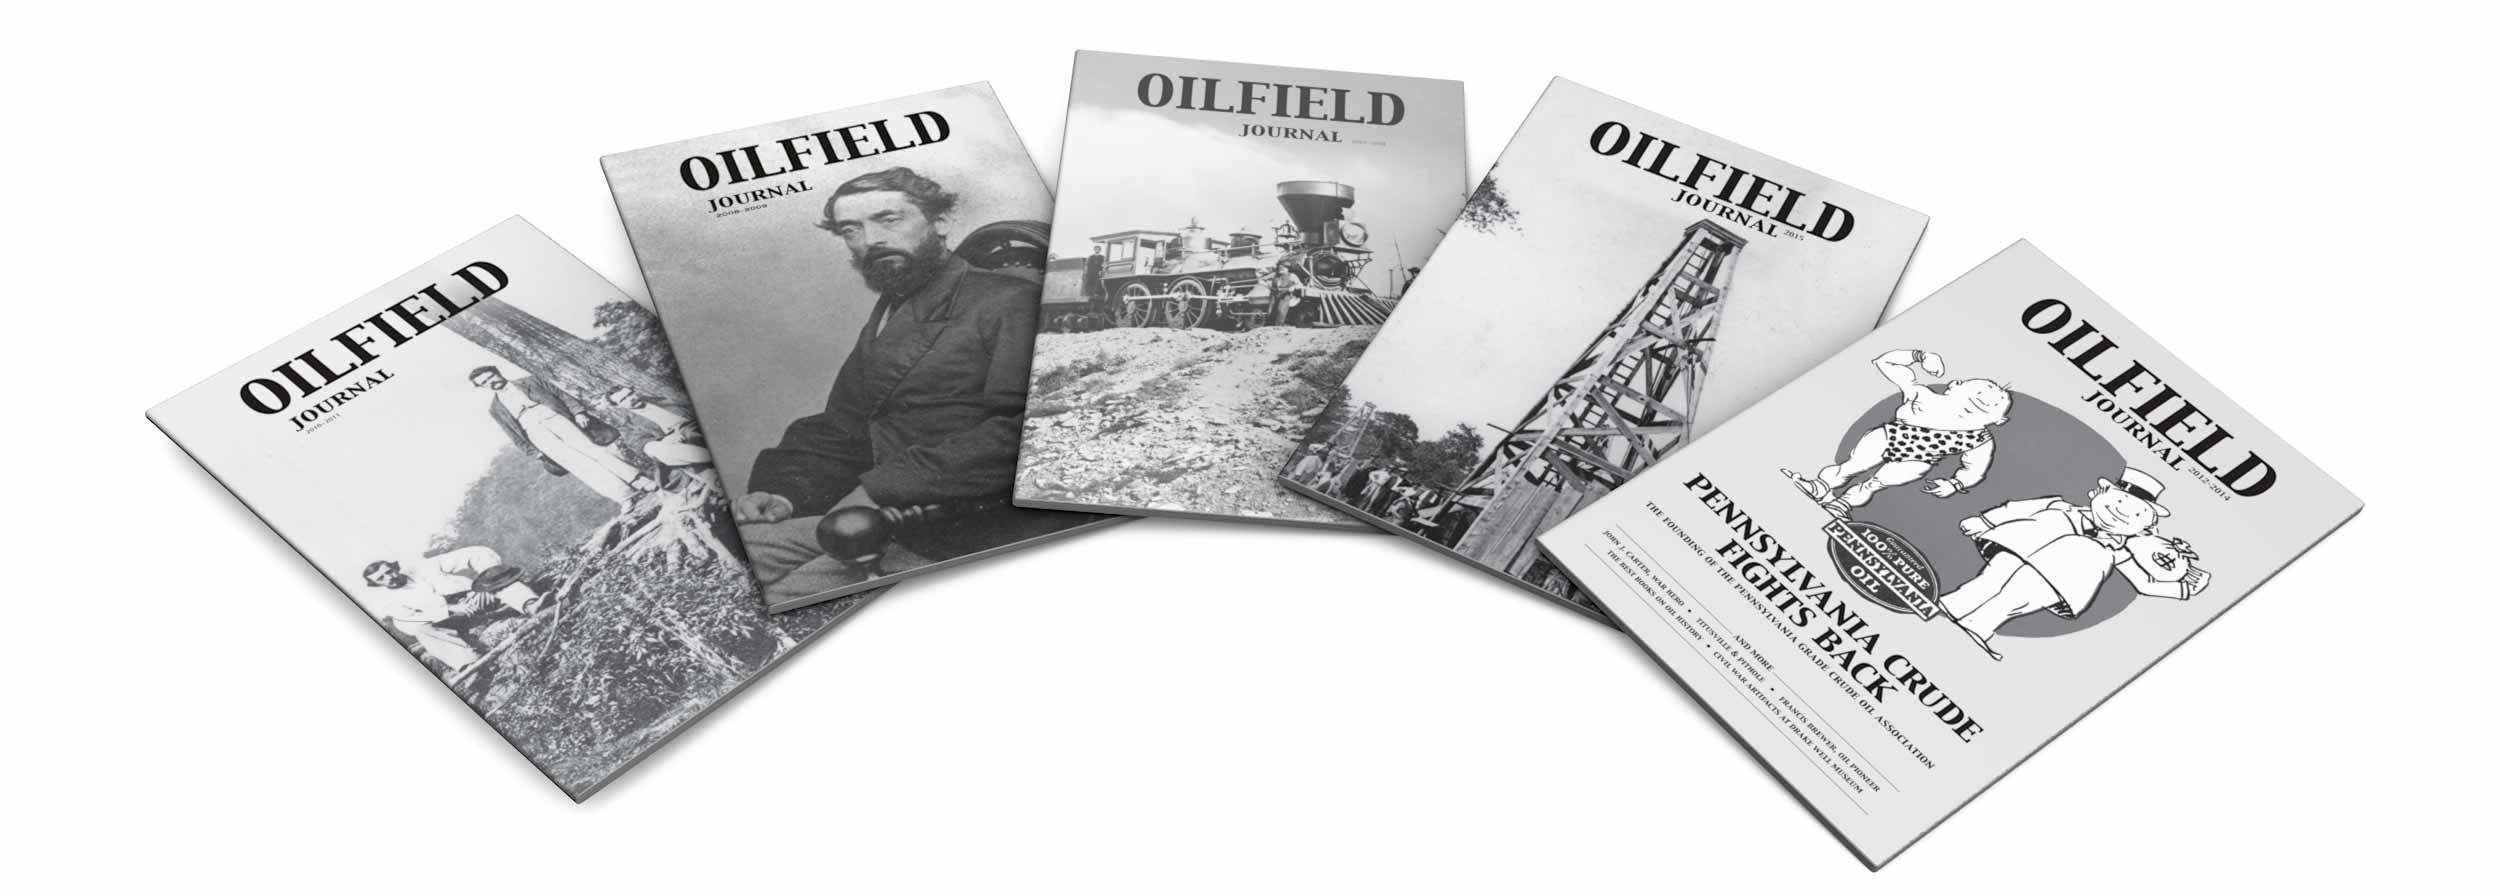 Oilfield Journal